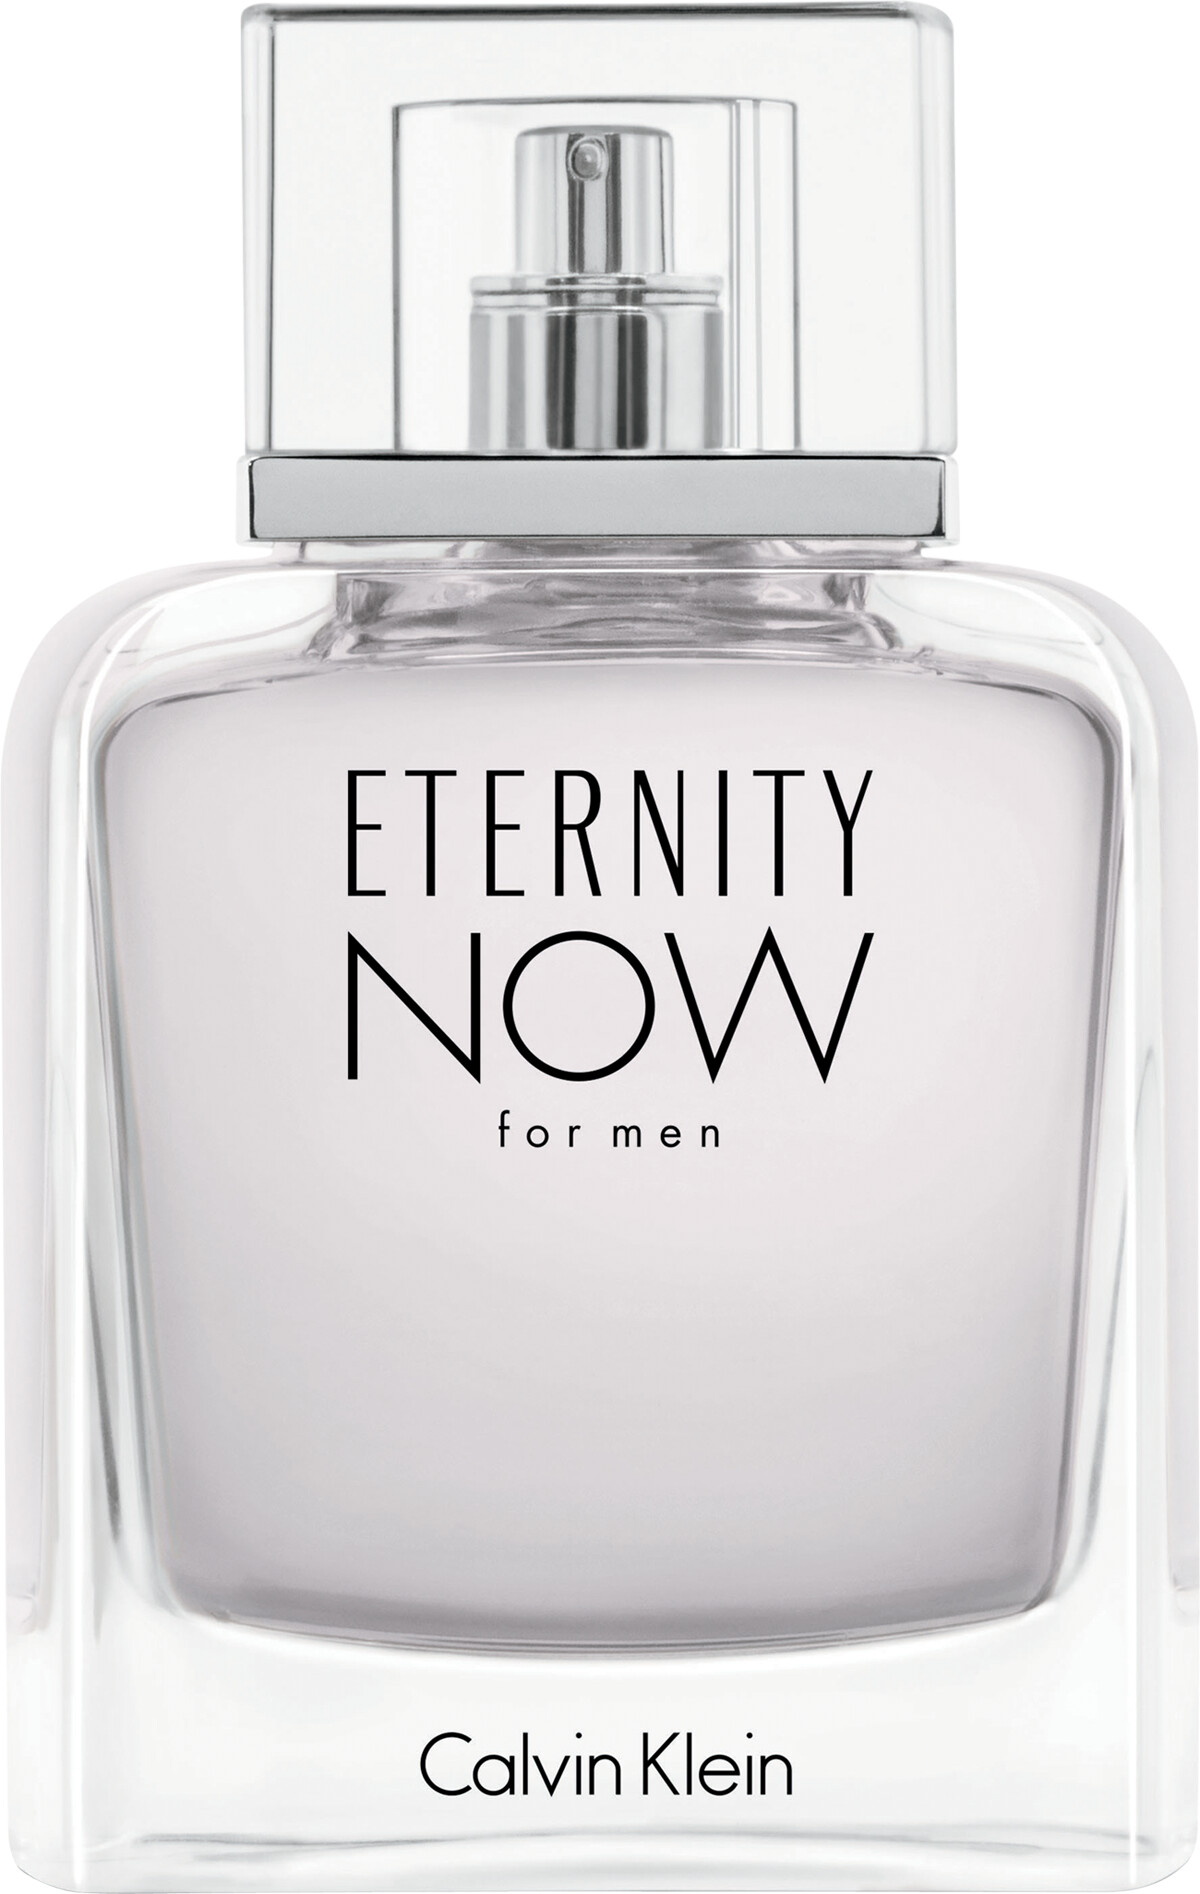 3406eb99e Calvin Klein Eternity Now for Men Eau de Toilette Spray 100ml ...